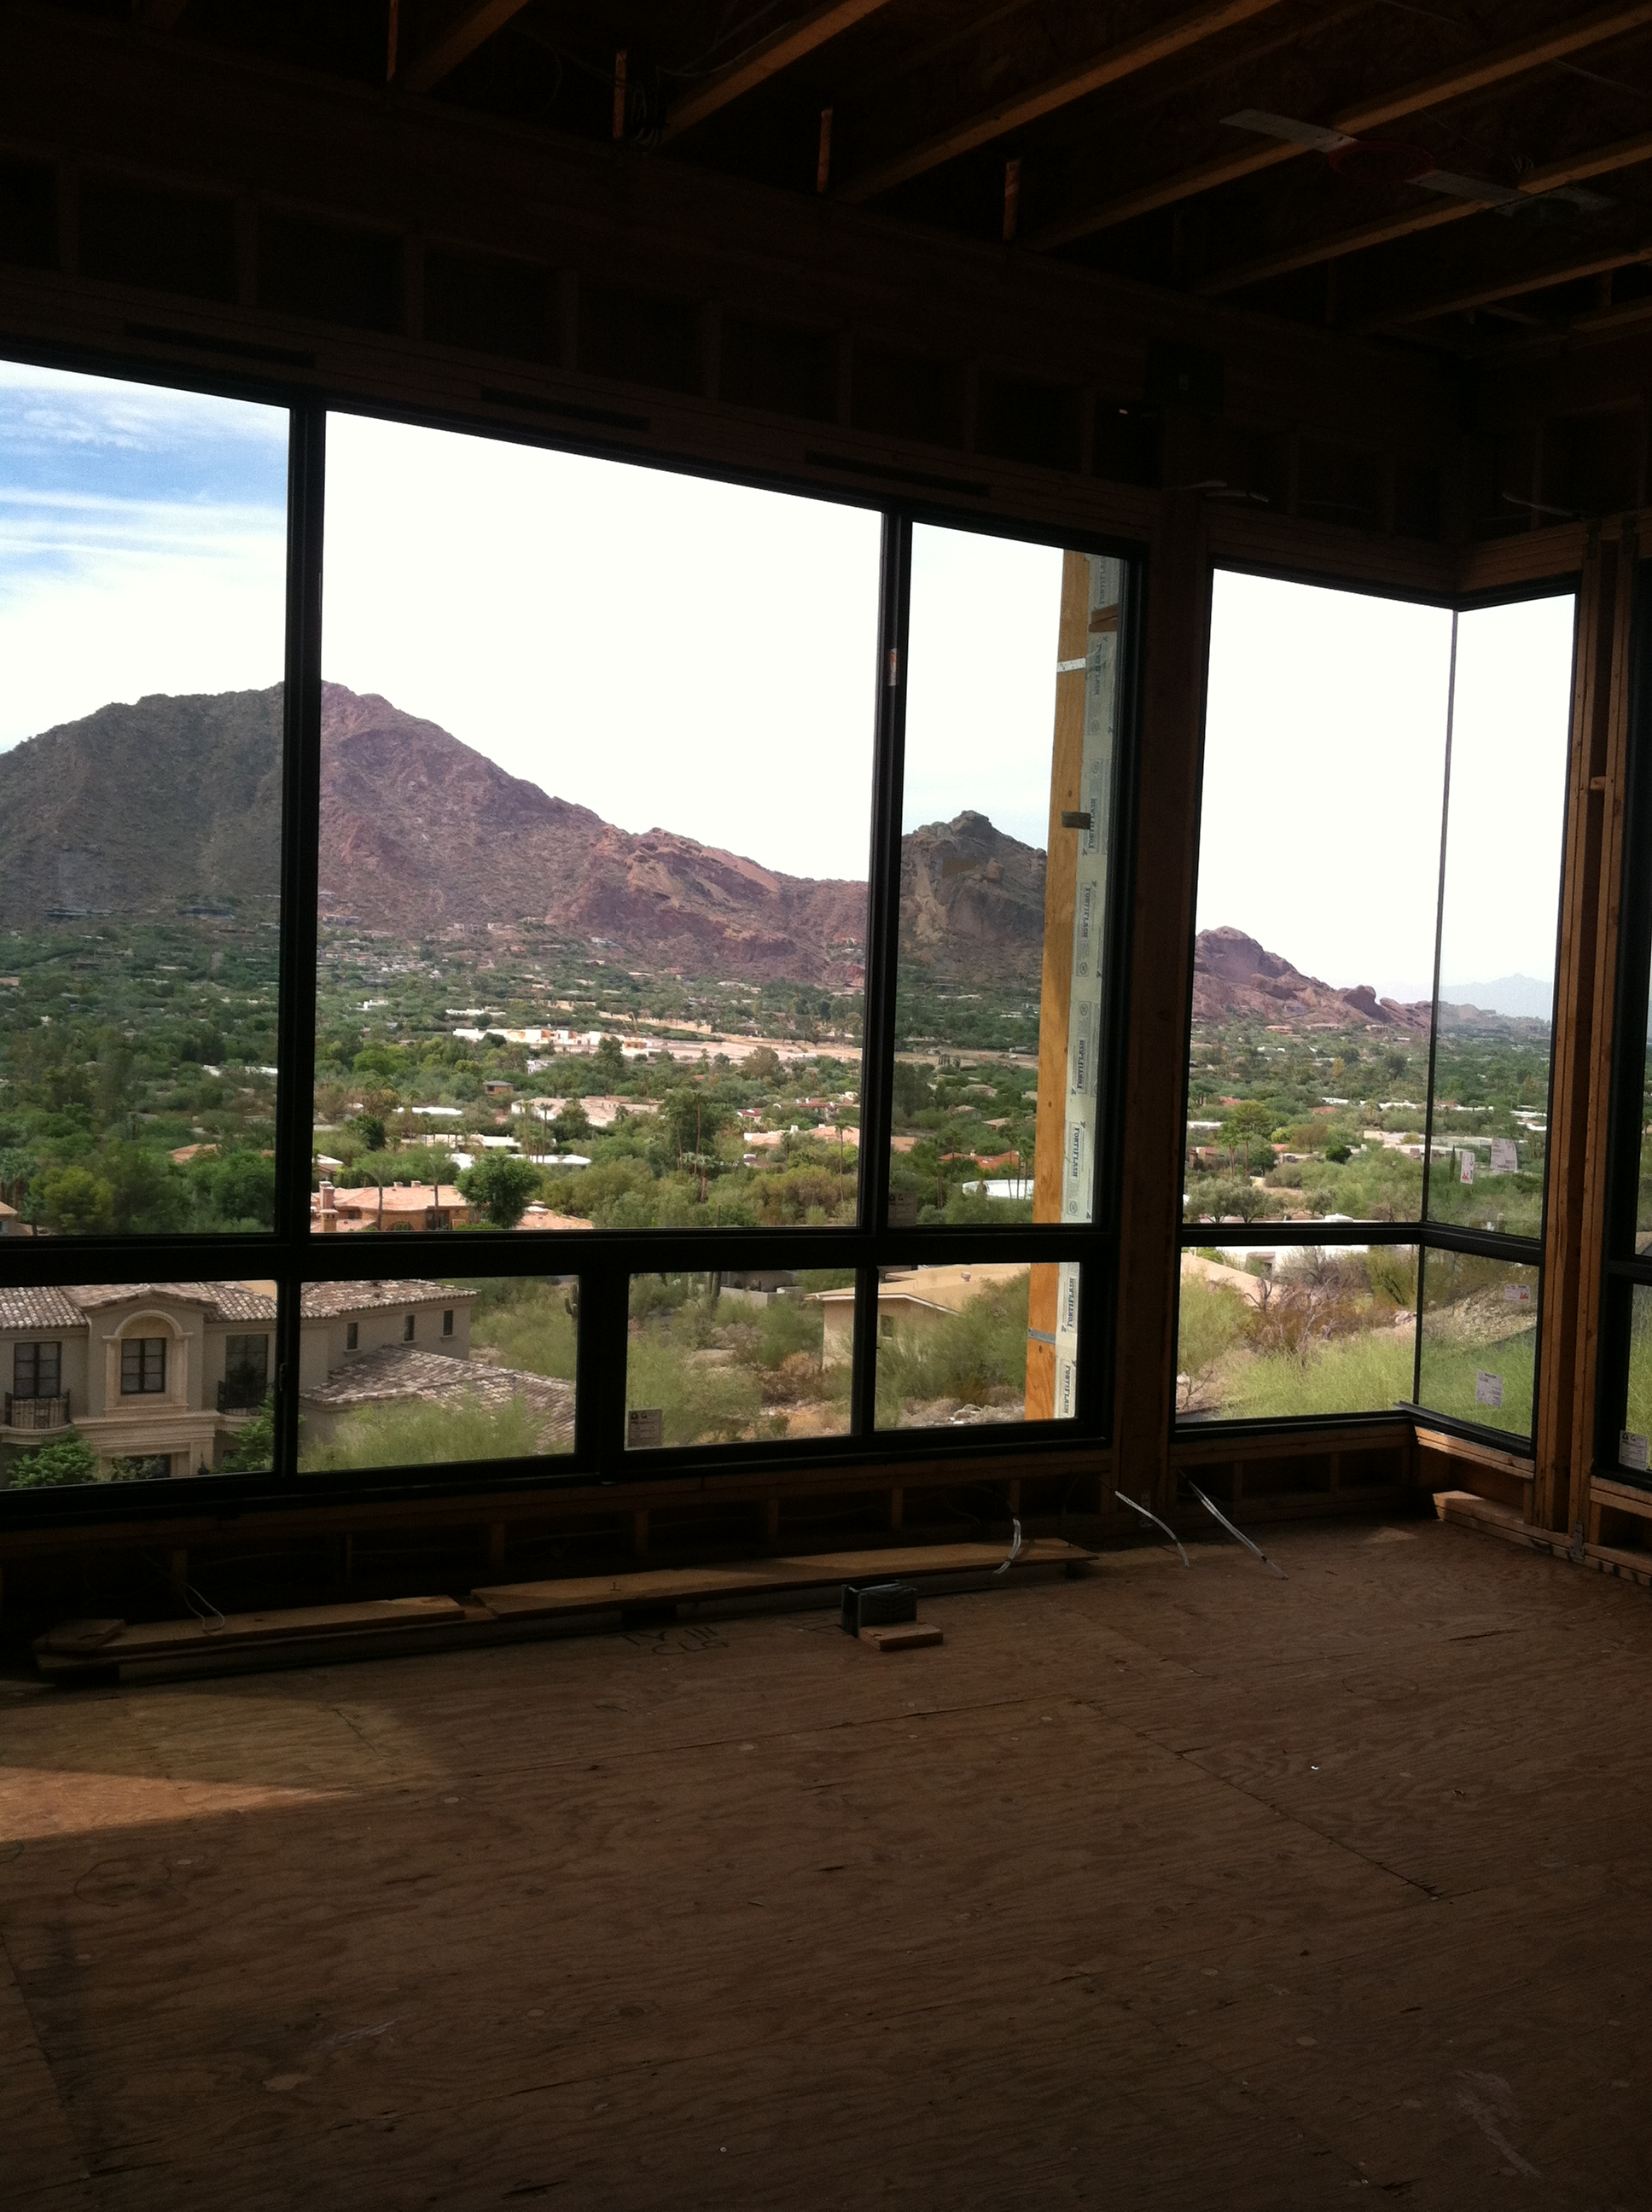 Camelback Mountain is clearly seen through these floor-to-ceiling windows.